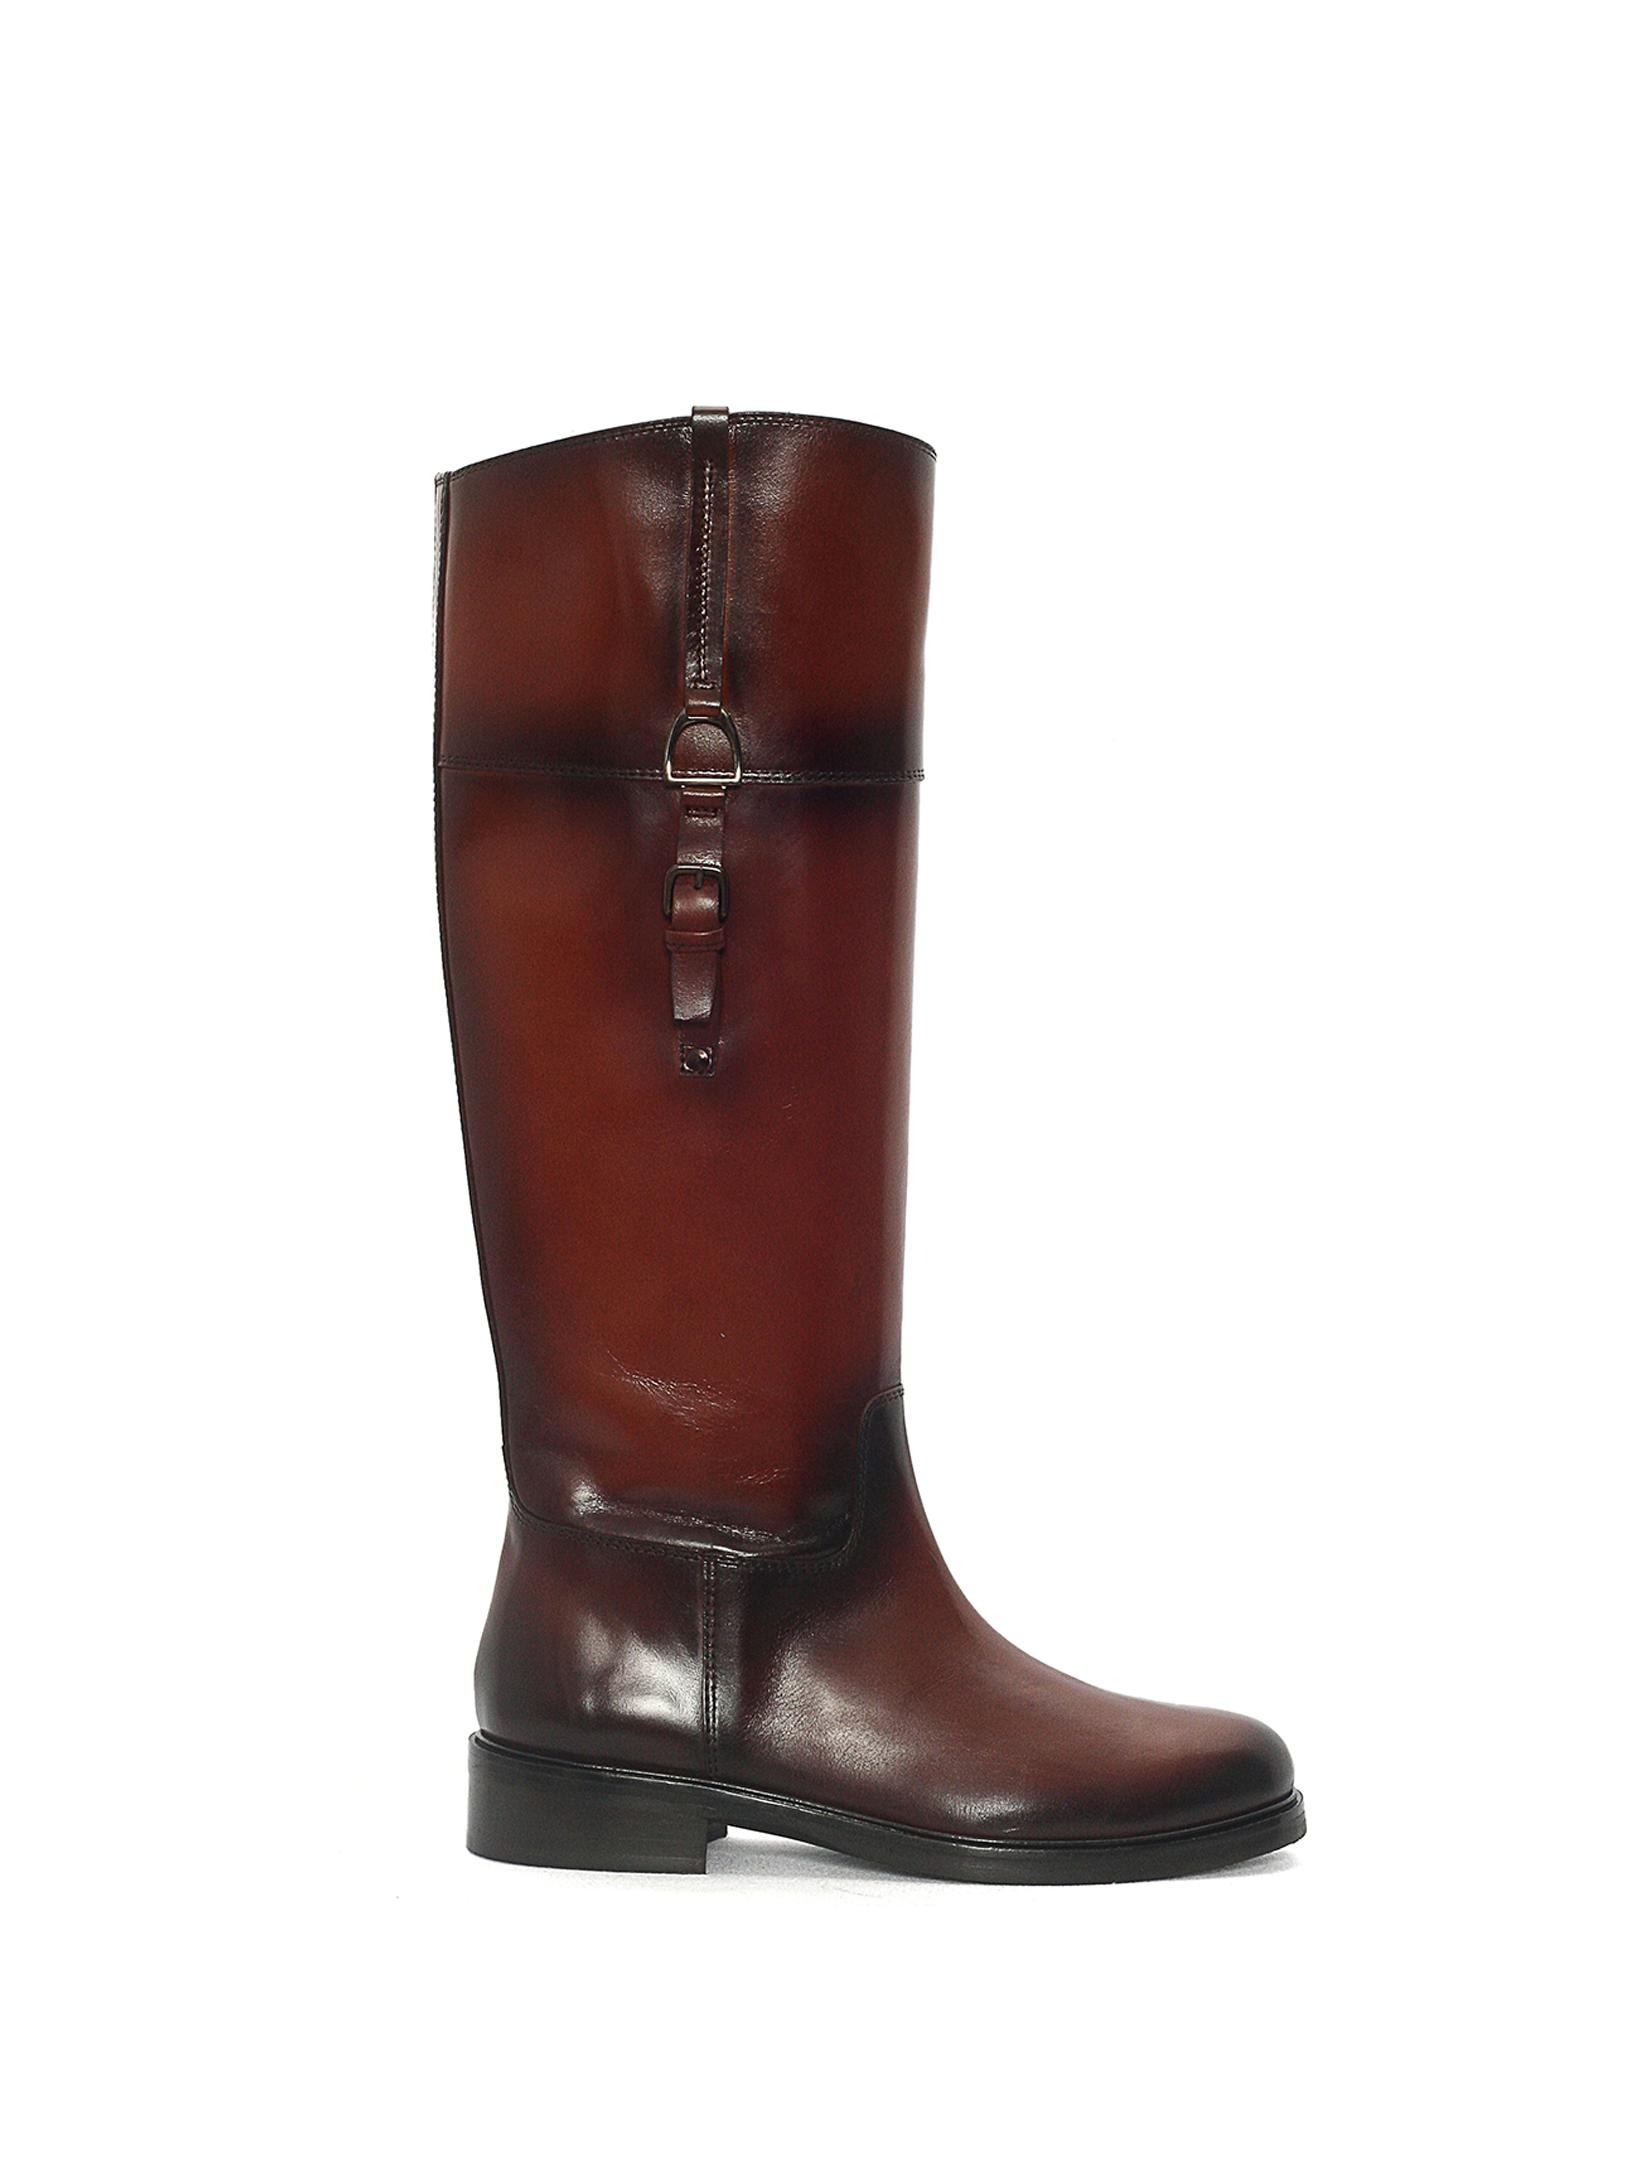 TERRY TOFFE BOOT SAMPLE